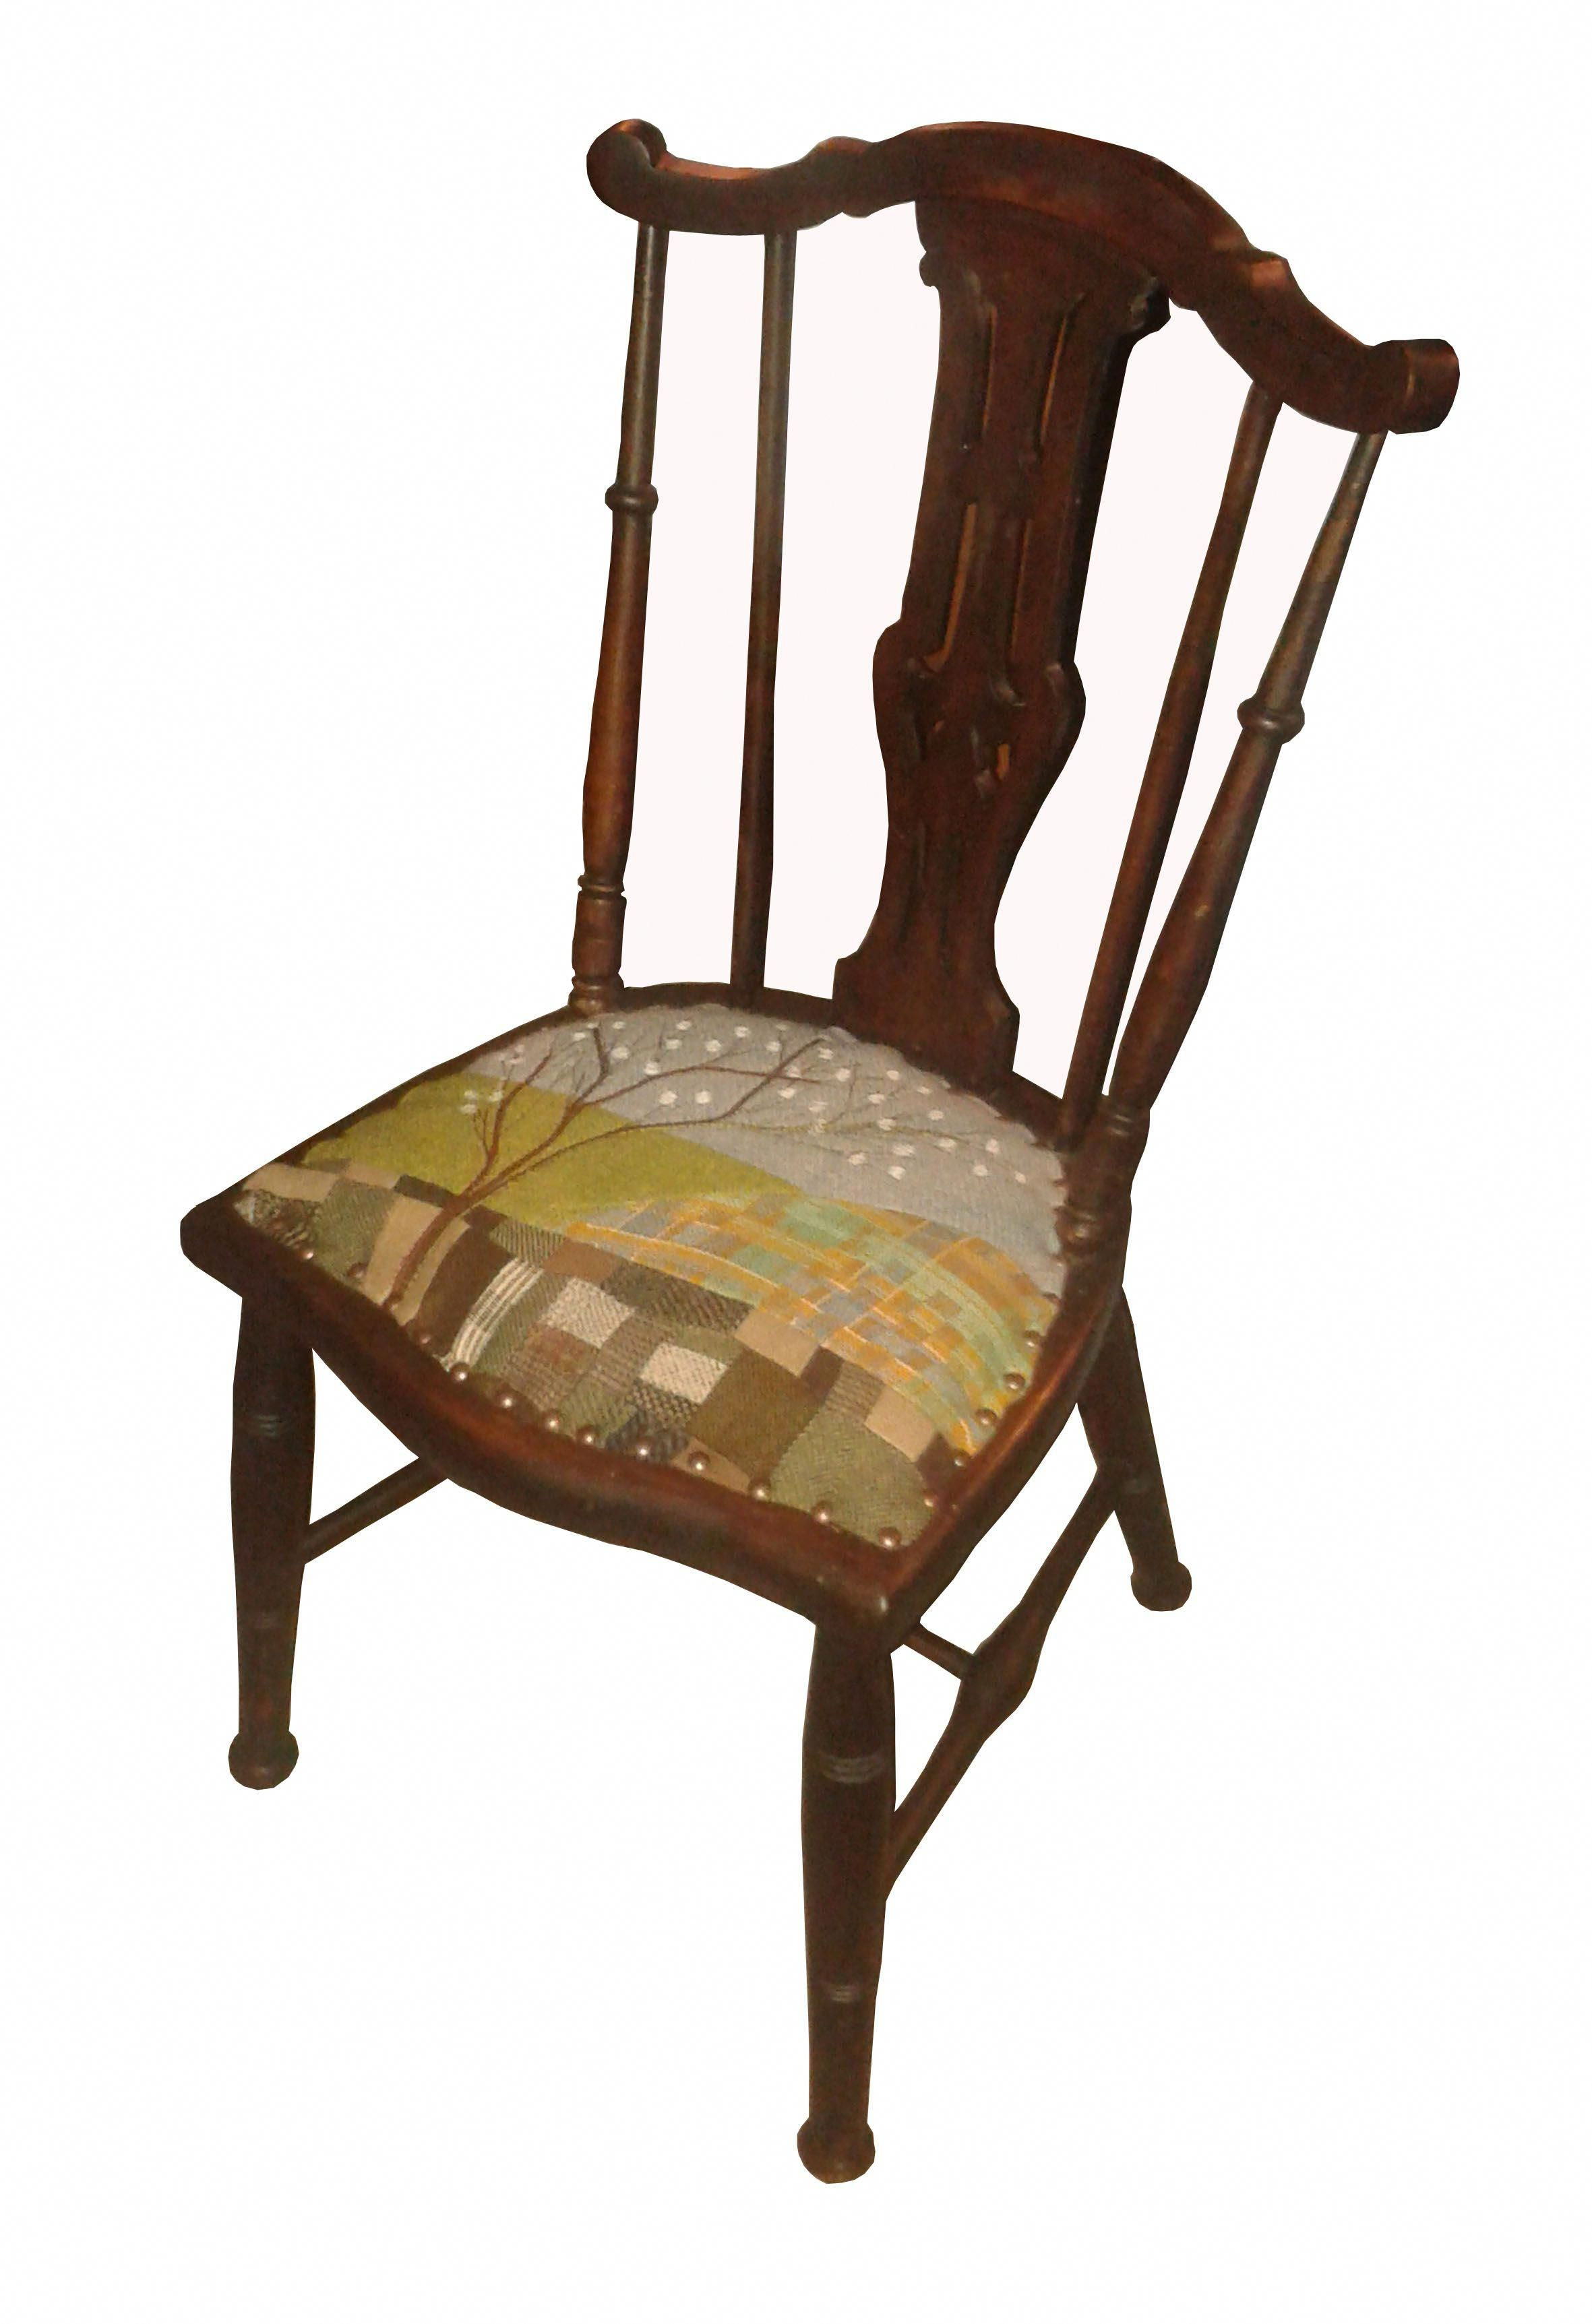 LowerBackPainProducts in 2019 Patchwork chair